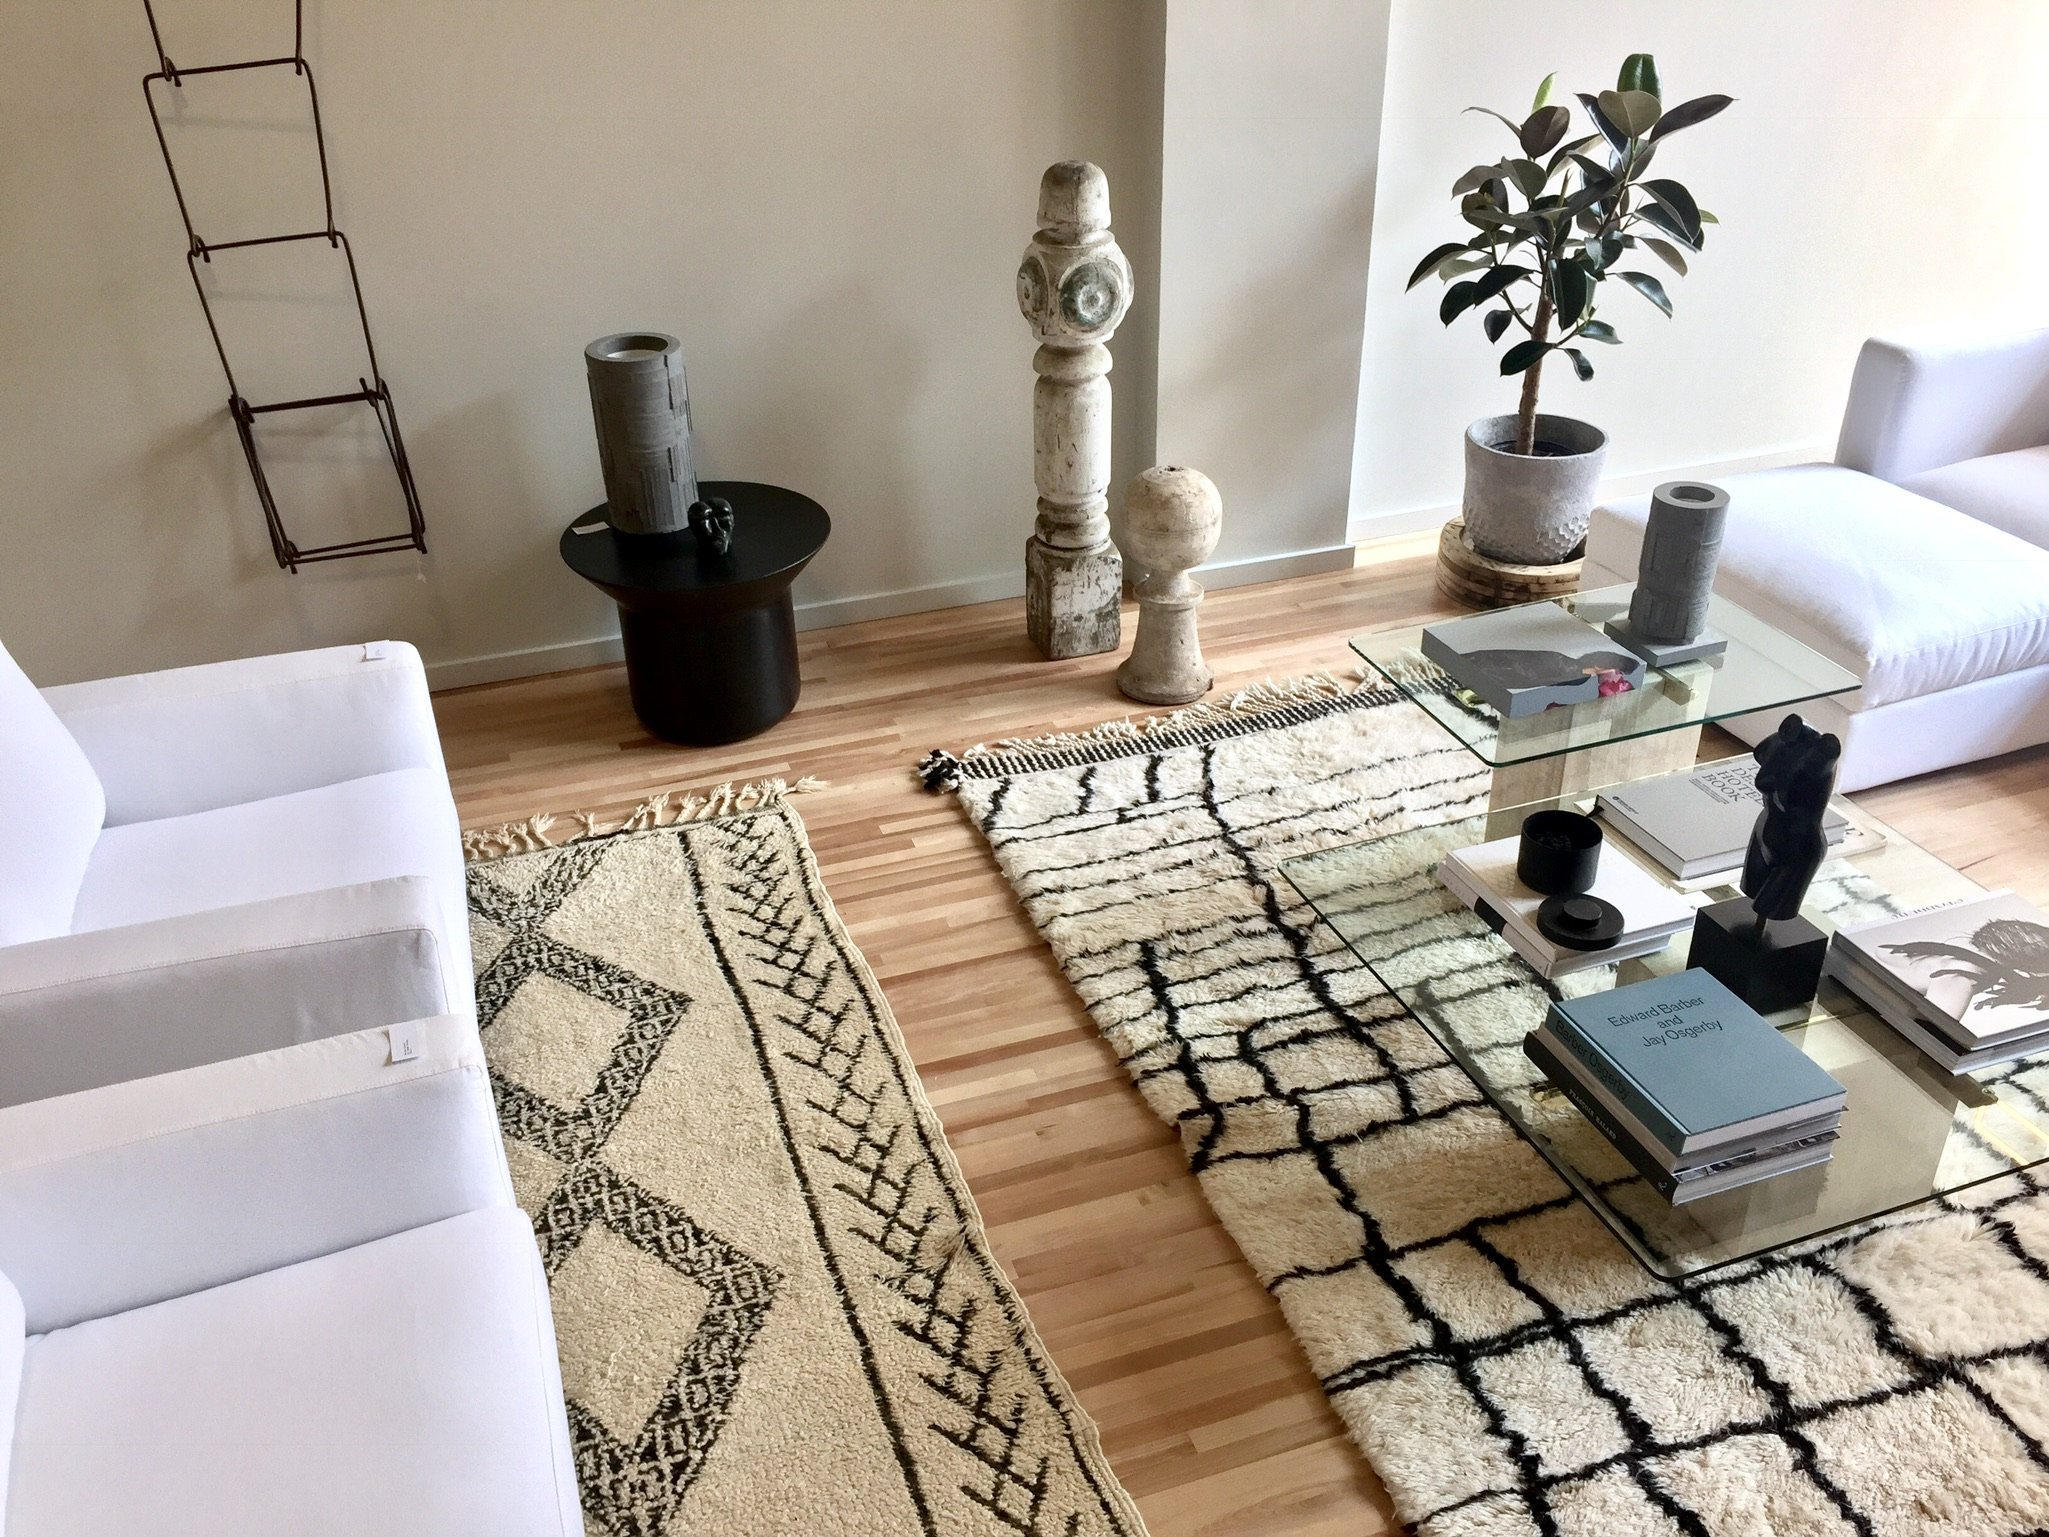 Moroccan rugs, old and new, adorn this beautiful space at 395 Notre-Dame West in Old Montreal